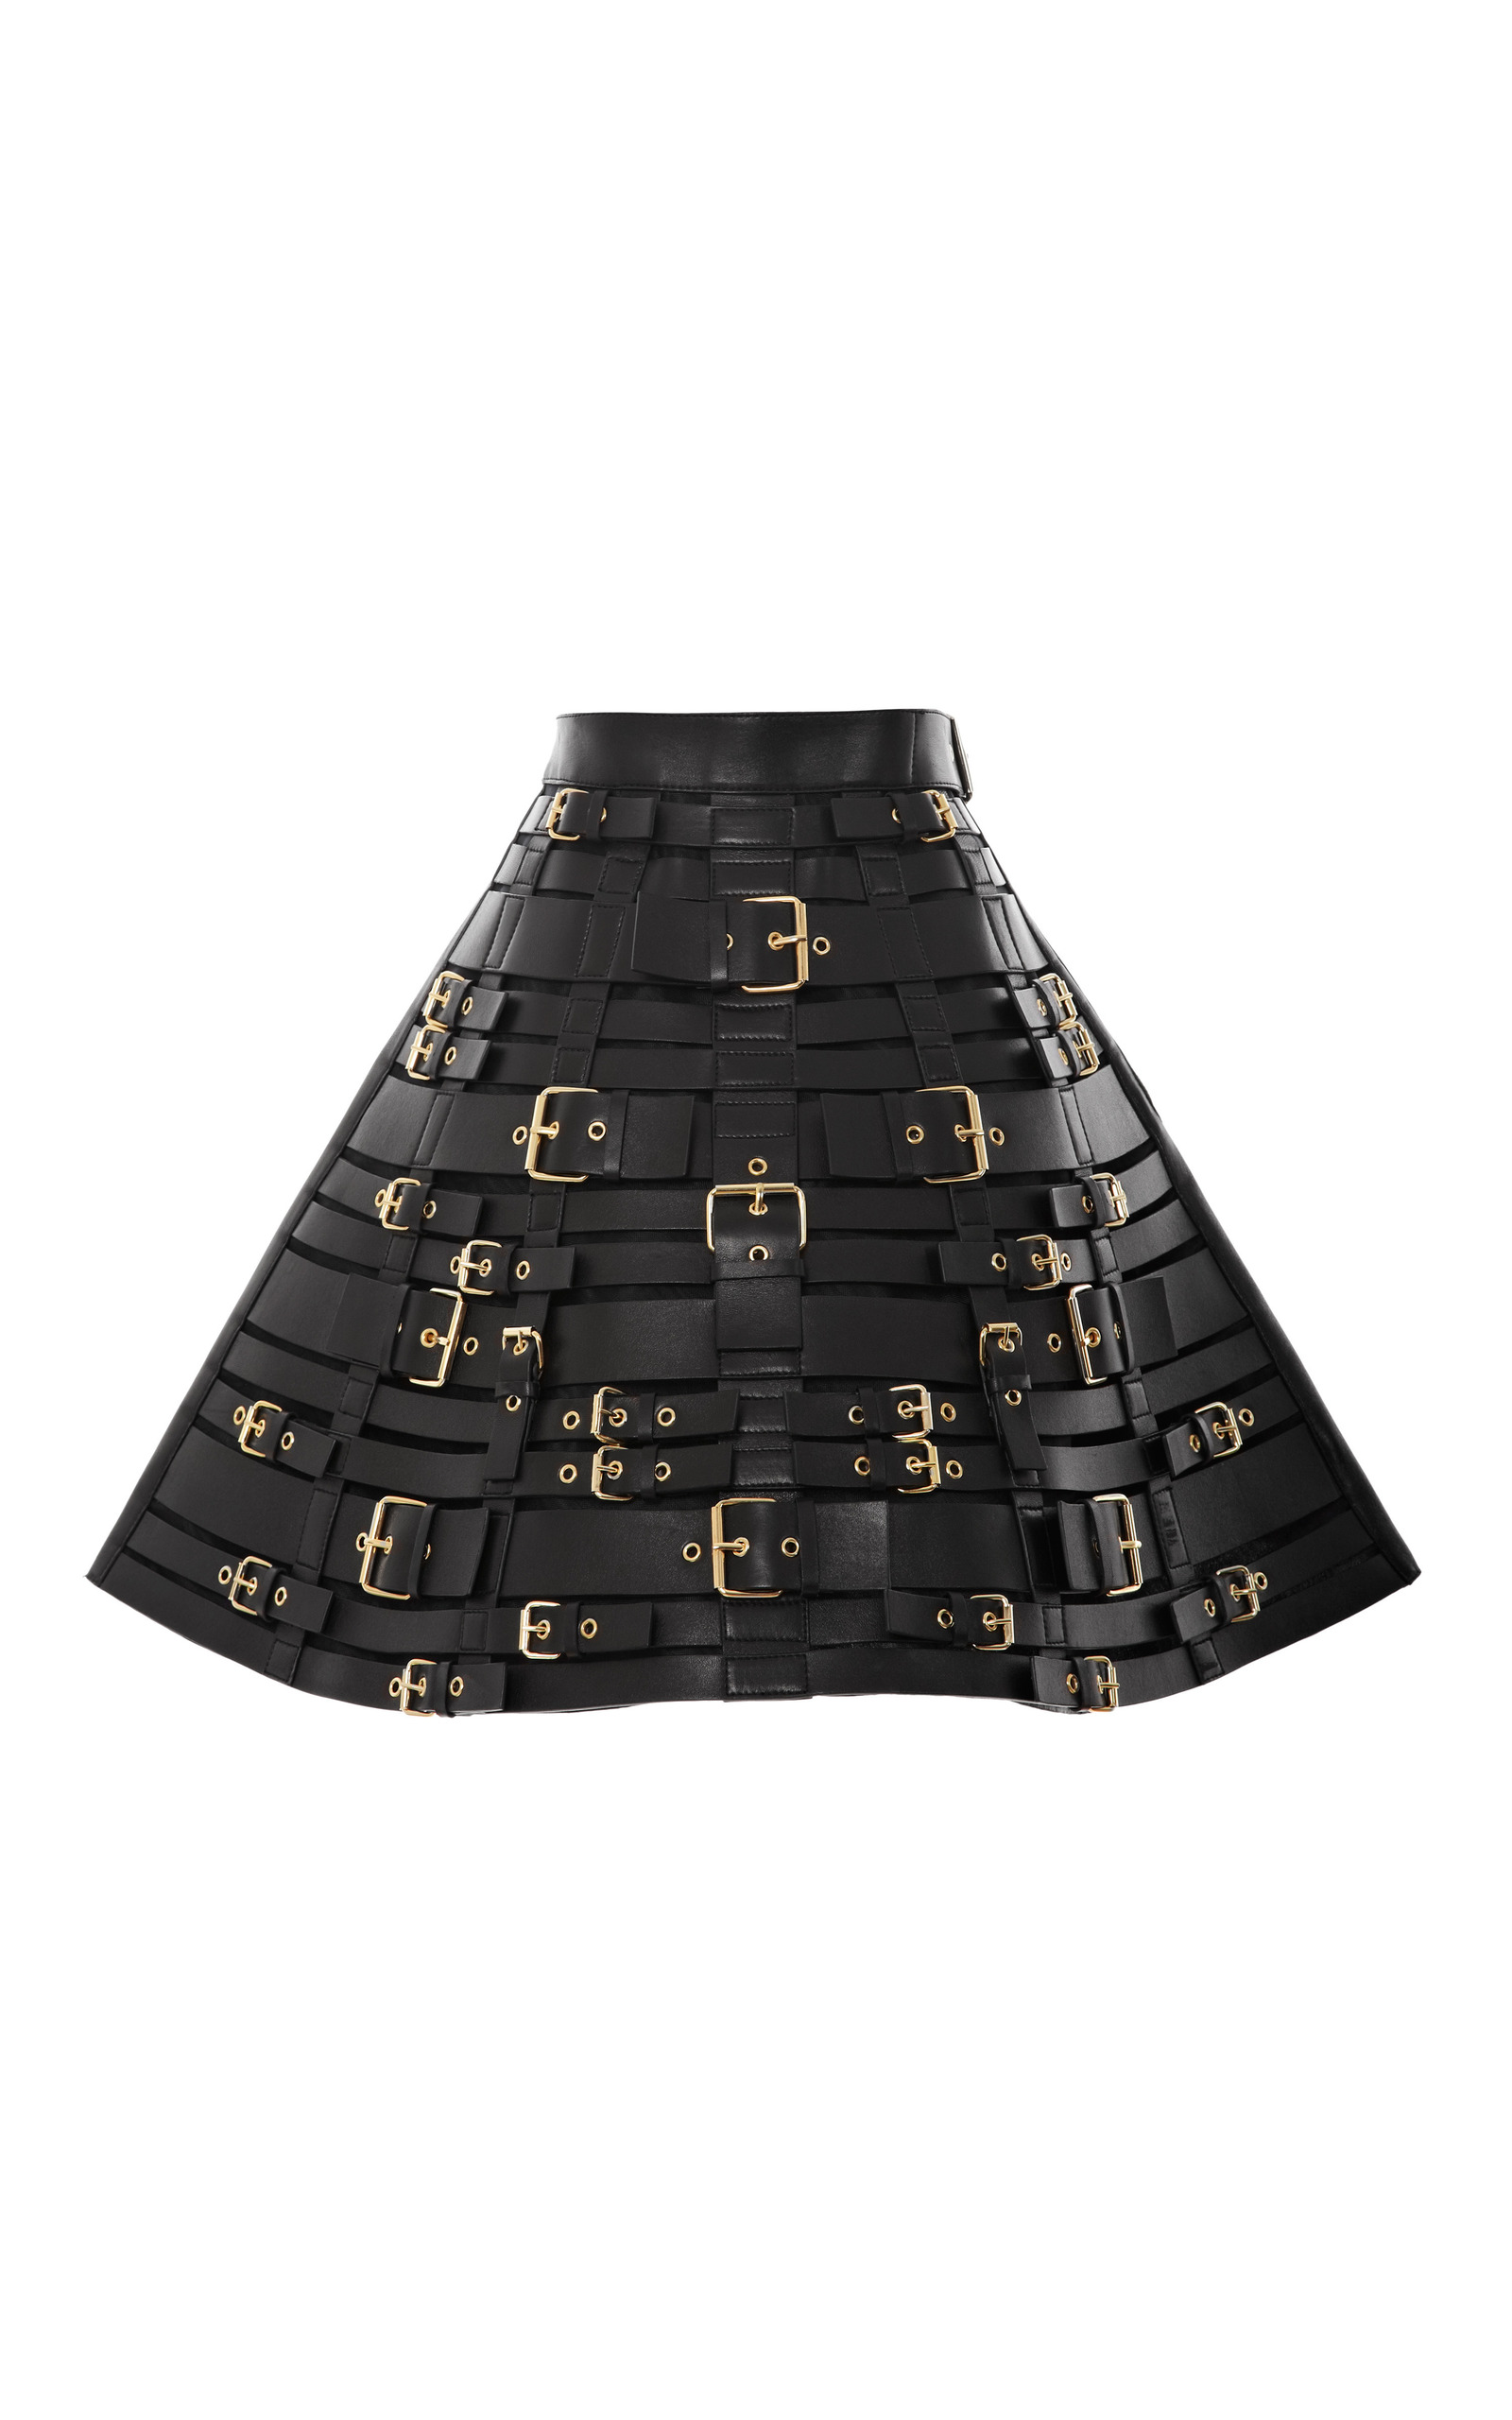 ebb9d43011 Fausto PuglisiBuckled Leather Harness Skirt. CLOSE. Loading